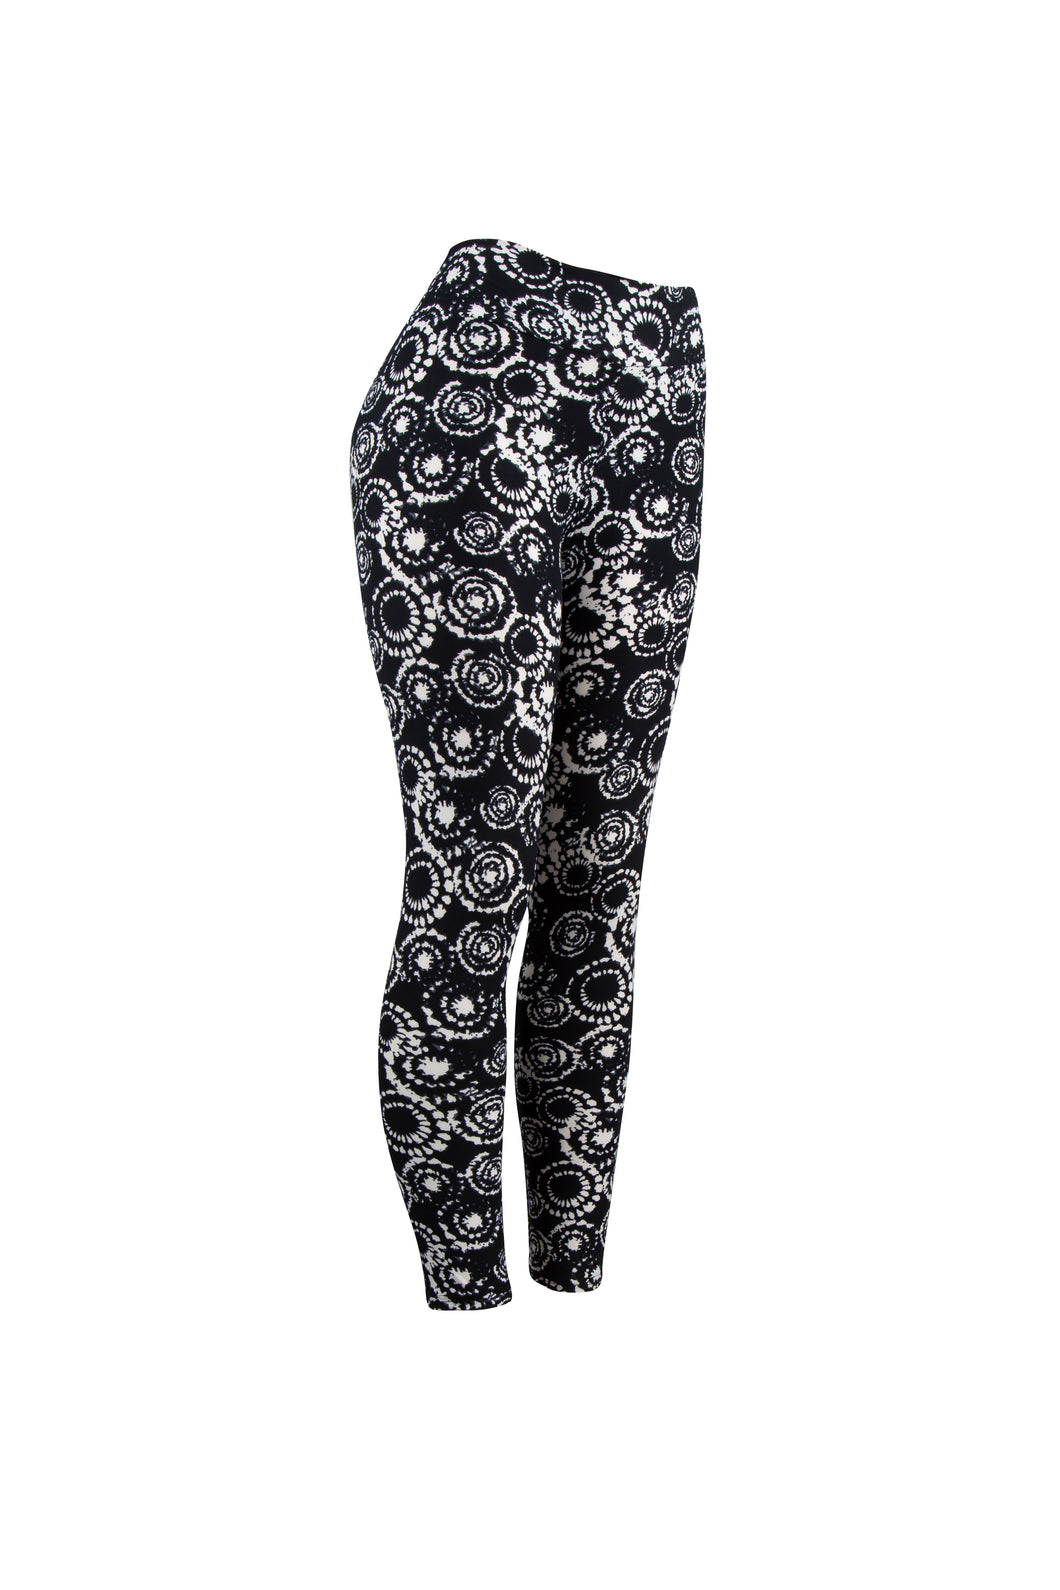 Natopia So Many Swirls Leggings One Size Fits 8-14